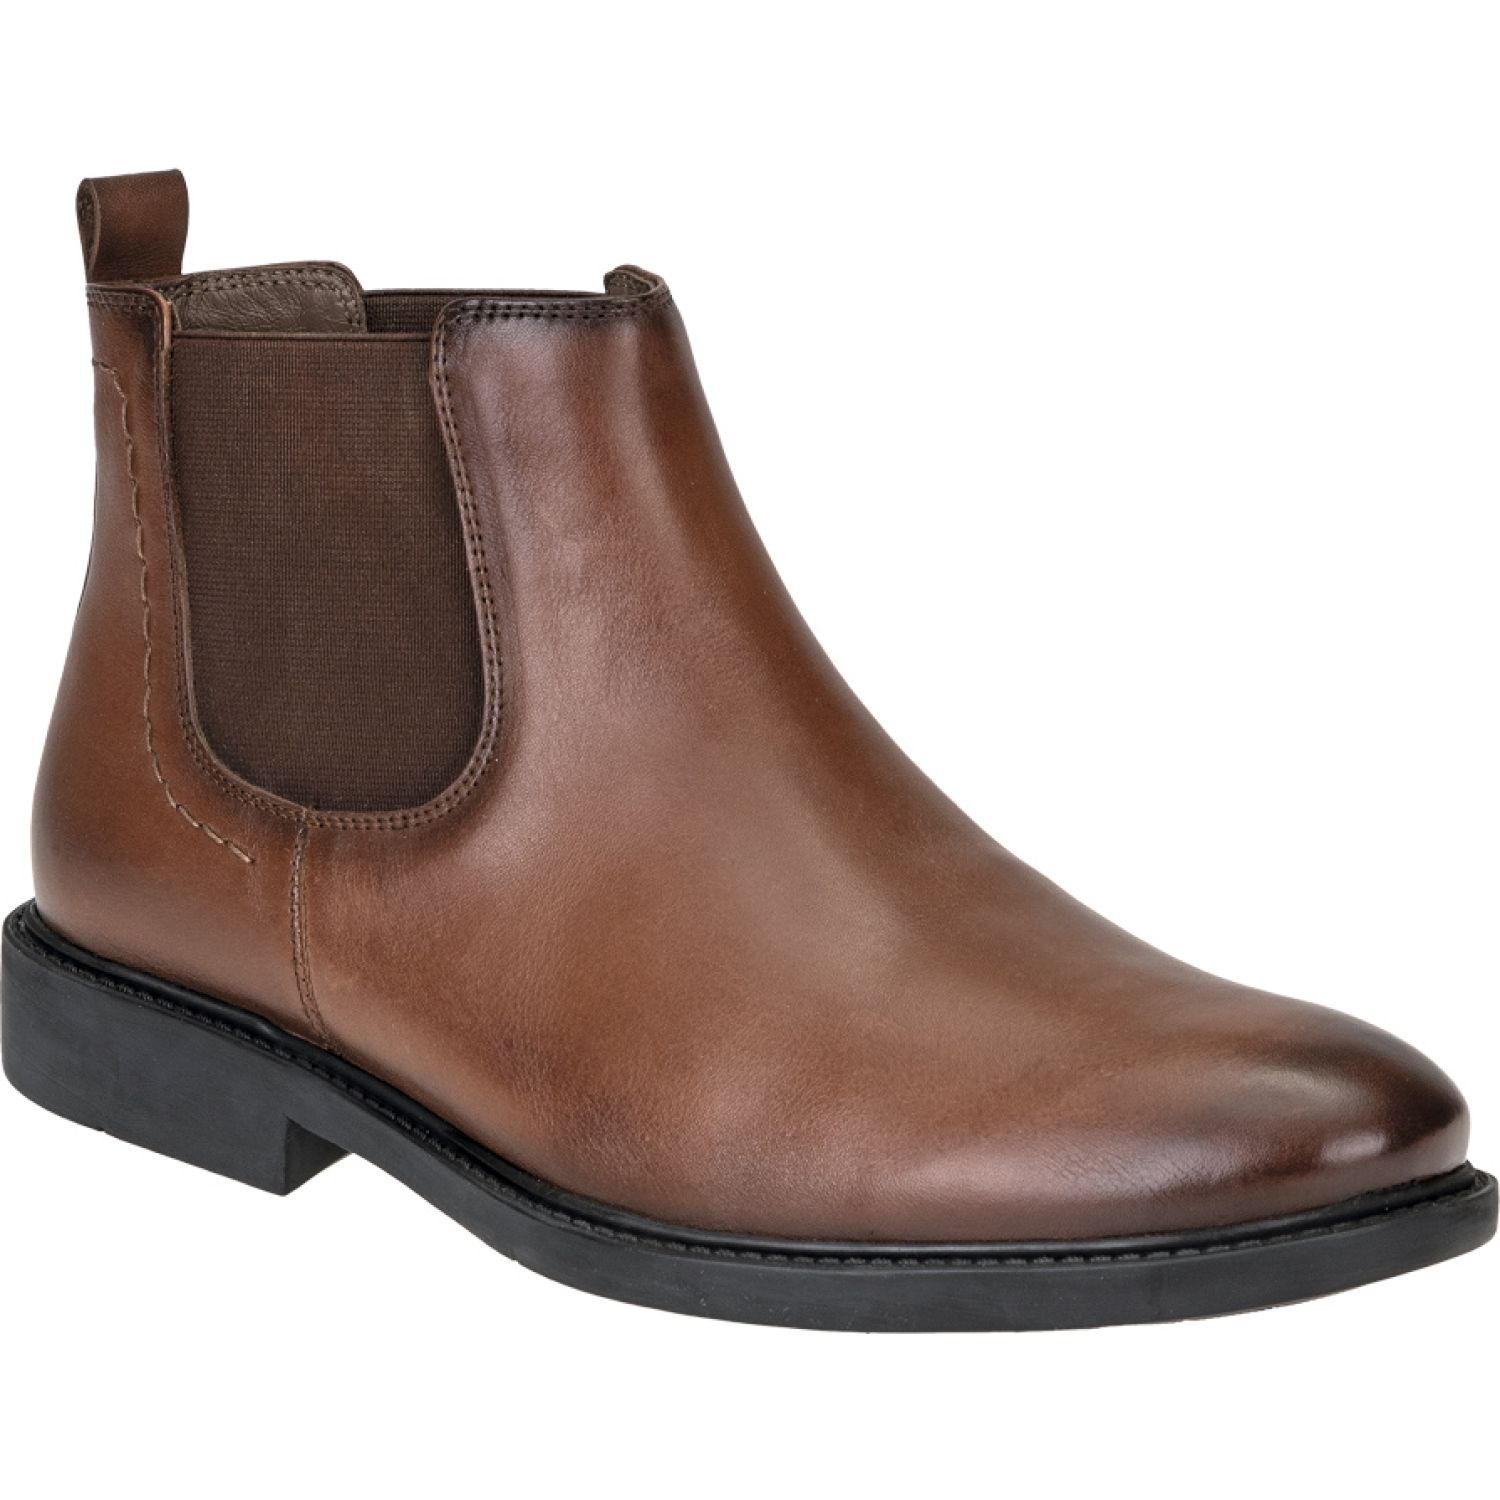 RENZO RENZINI Ra-02i19 (39-43) TOFFEE Oxford & Derby